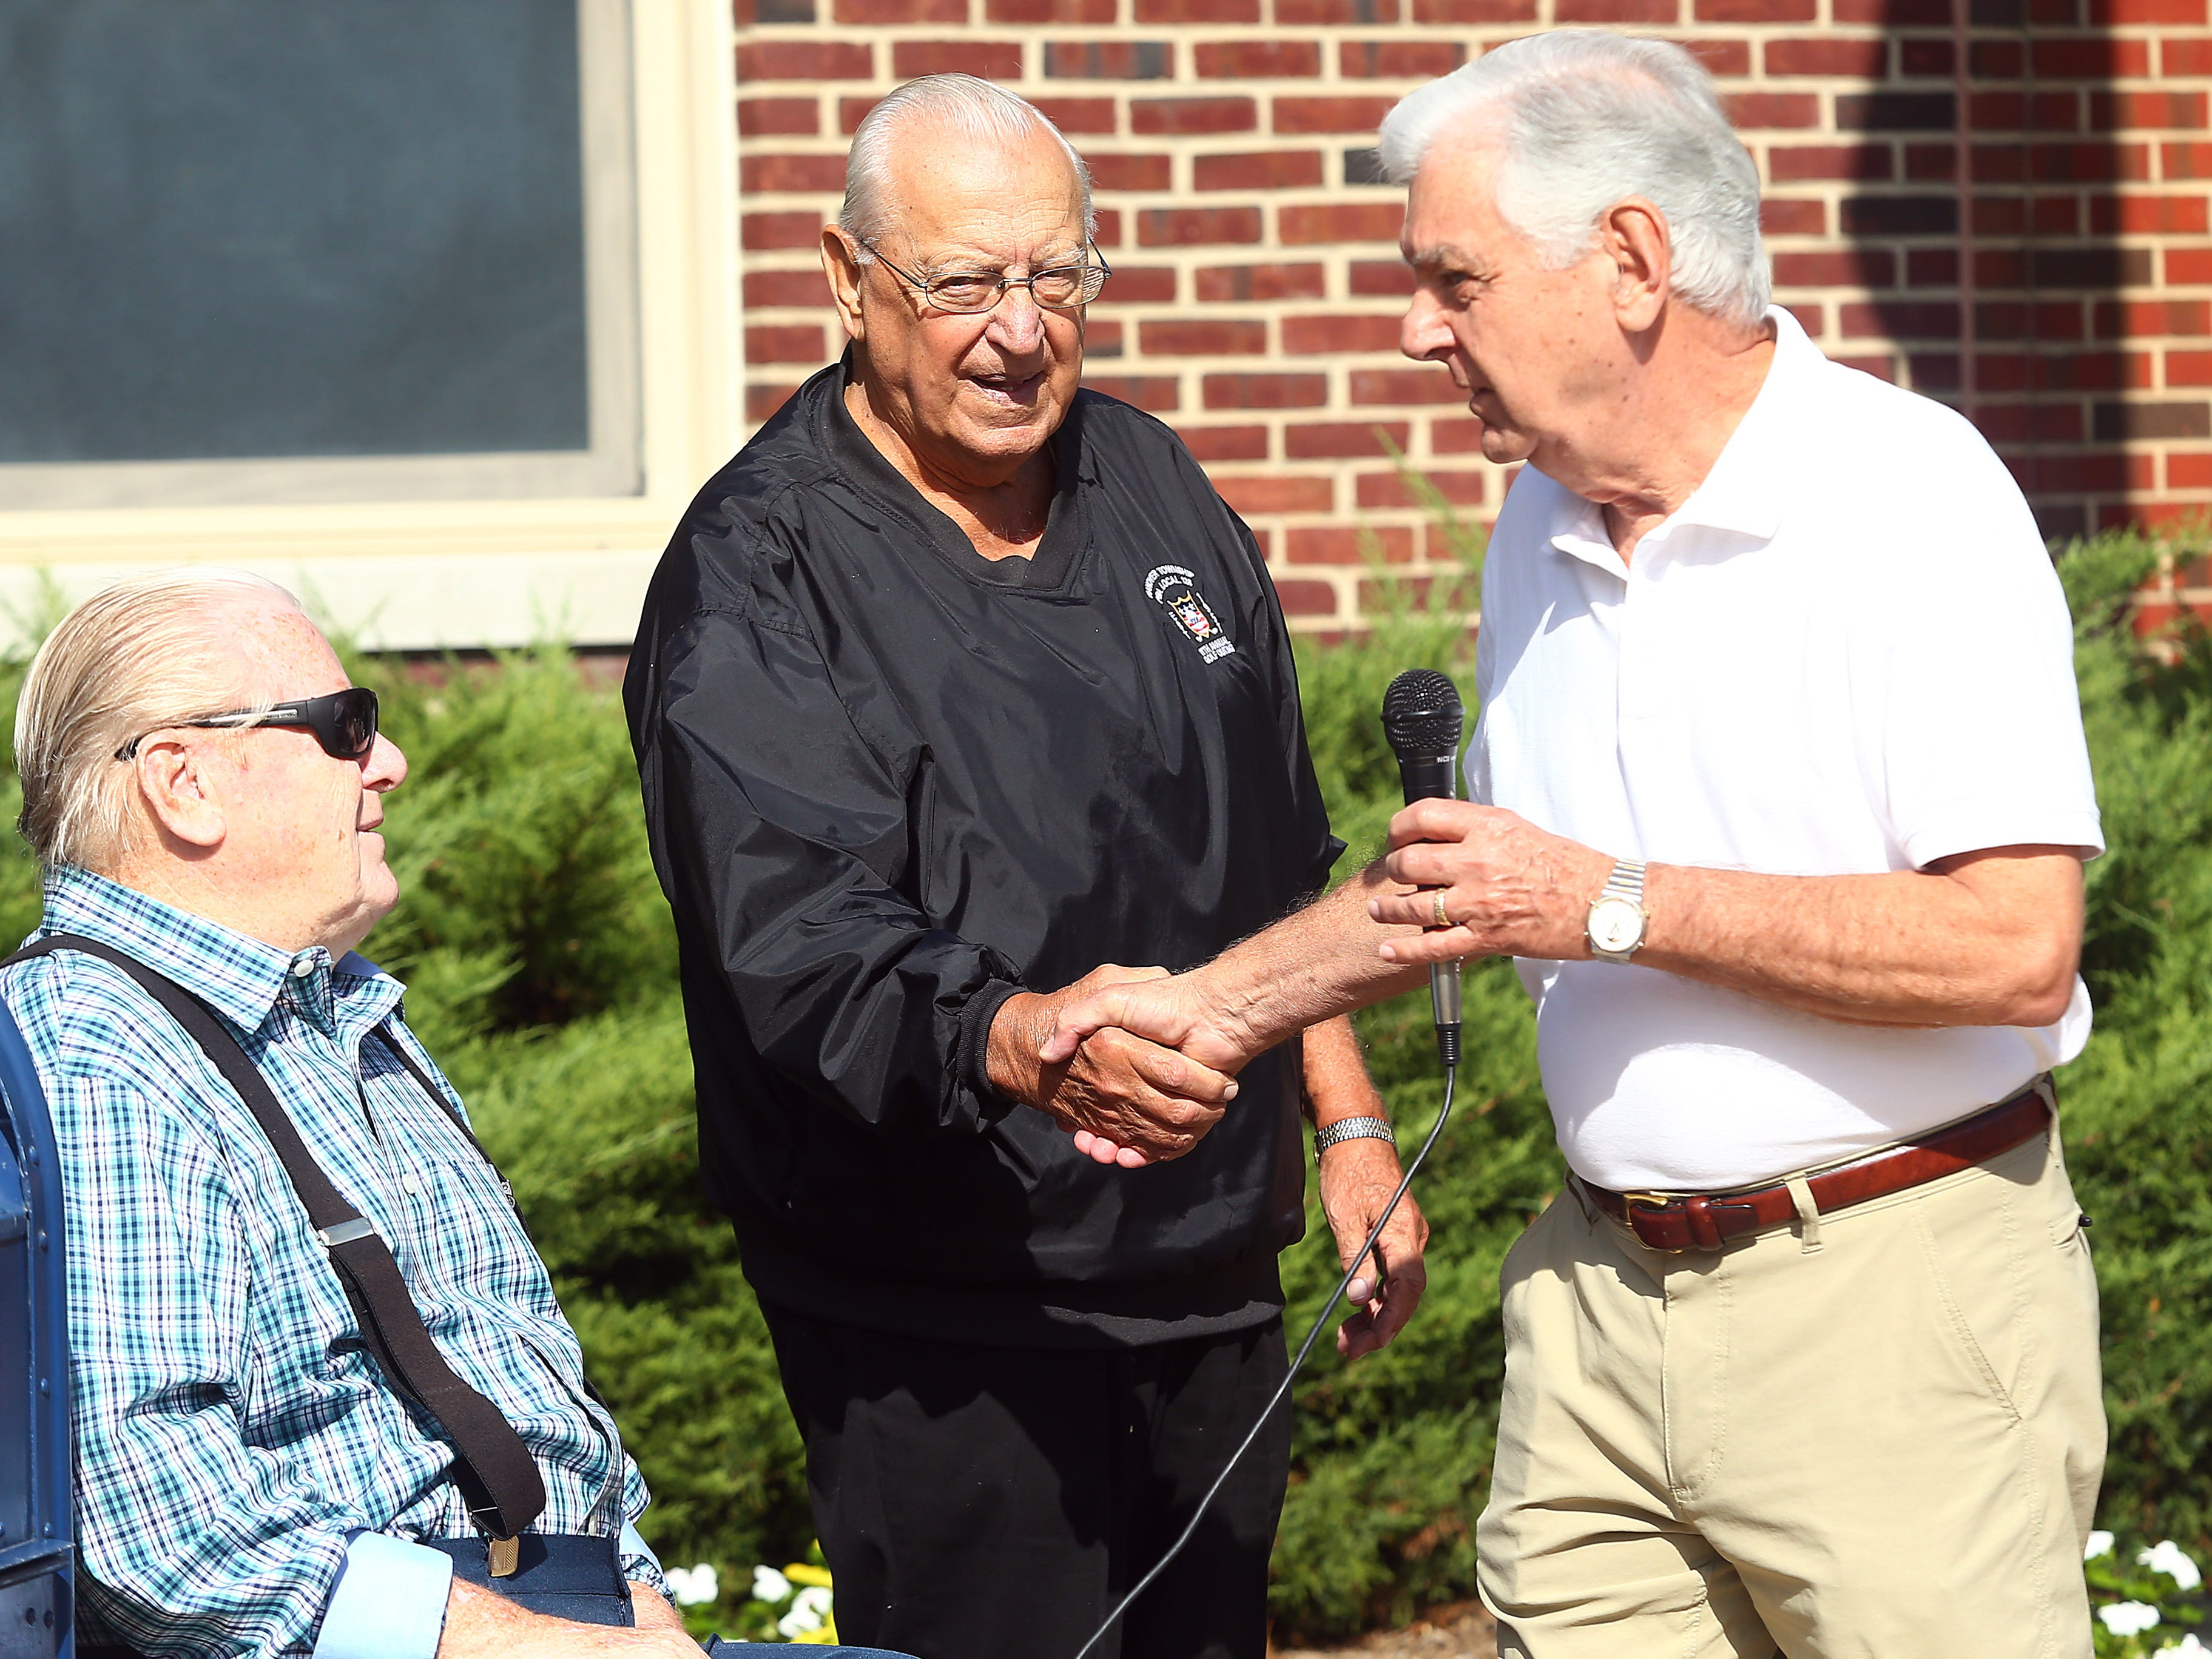 Steve Bolcar shakes hands with Hanover Mayor Ronald Francioli as life-long friend Joseph Mihalko looks on at the Hanover Municipal Building. Bolcar was given a police-style clapout for retirement of the 60-year officer and crossing guard. October 3, 2018, Hanover, NJ